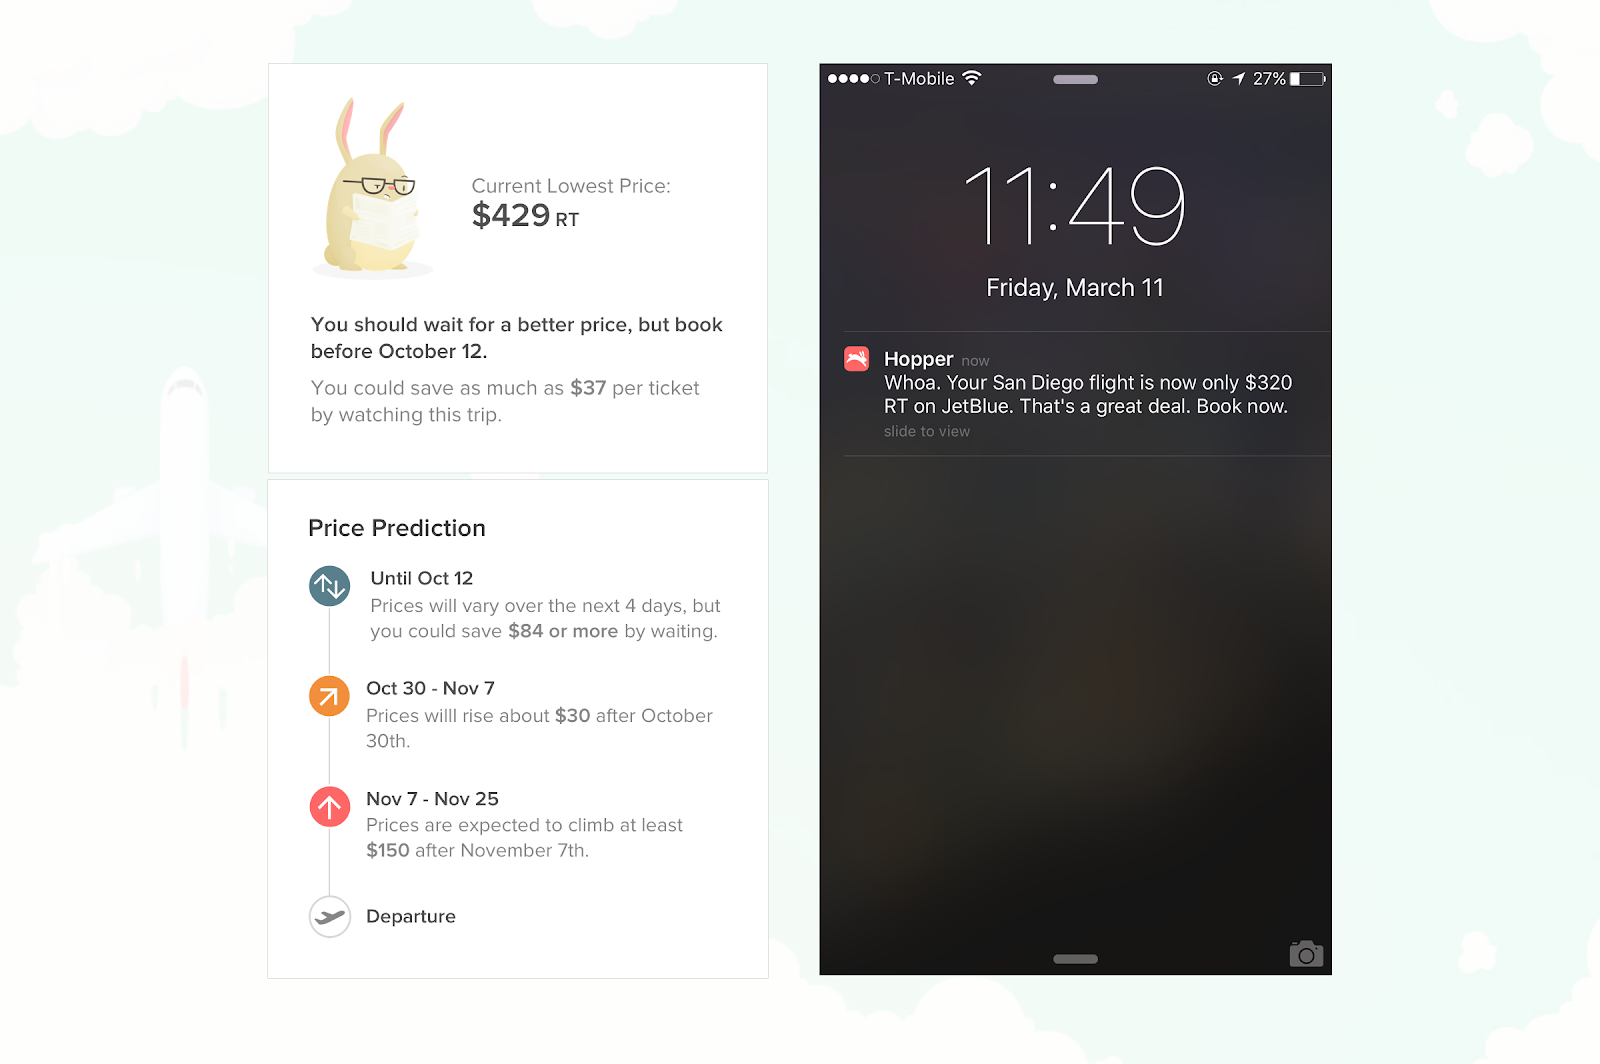 this is an image from hopper travel app showing current flight prices and recommendations with a reading rabbit icon on the left side. on the right side is a preview of a hopper notification on a phone lock screen